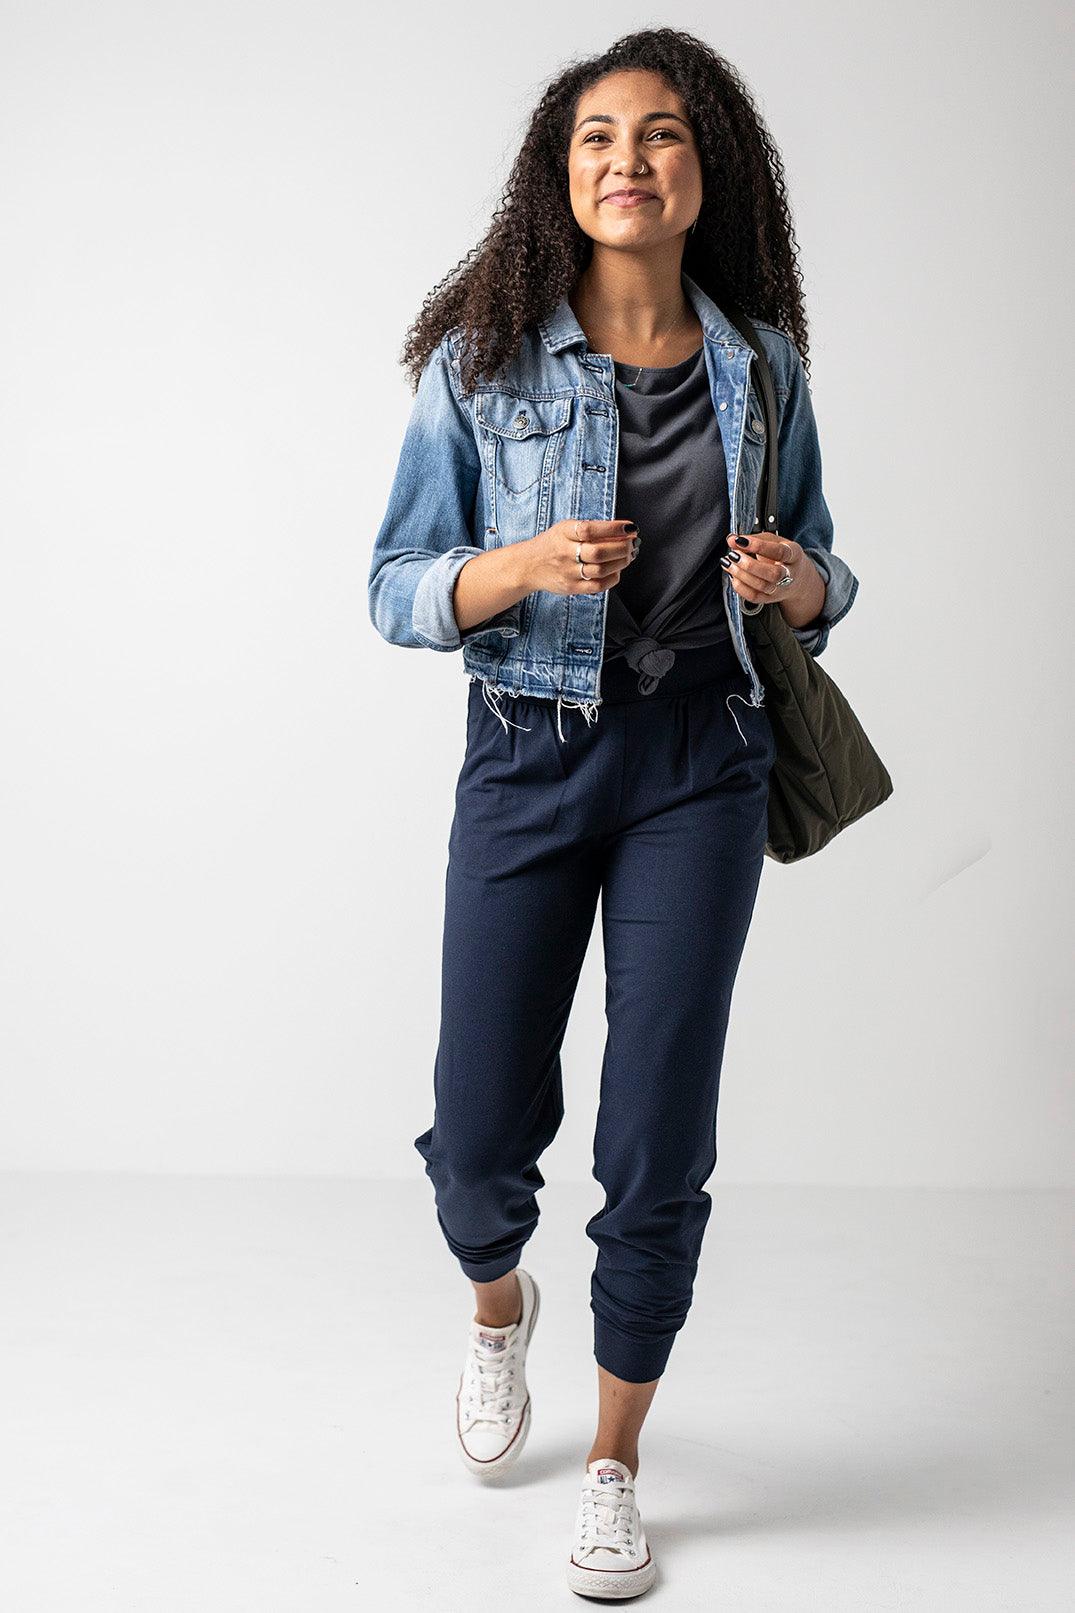 24/7 Pants in Navy and Flirty Off-Shoulder in Slate Gray